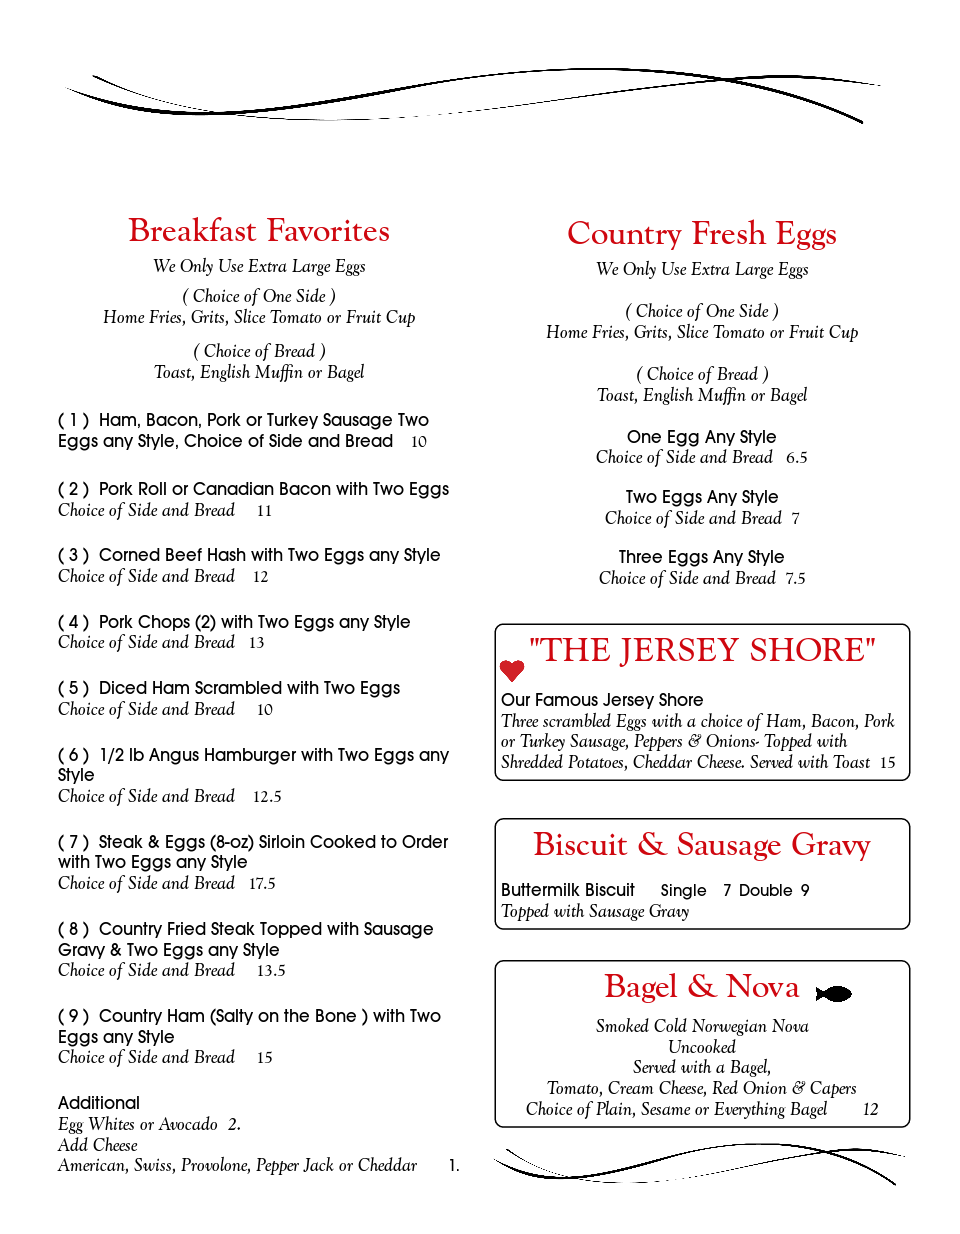 Breakfast Favorites, Country Fresh Eggs, The Jersey Shore, Biscuit & Sausage Gravy, And Bagel & Nova